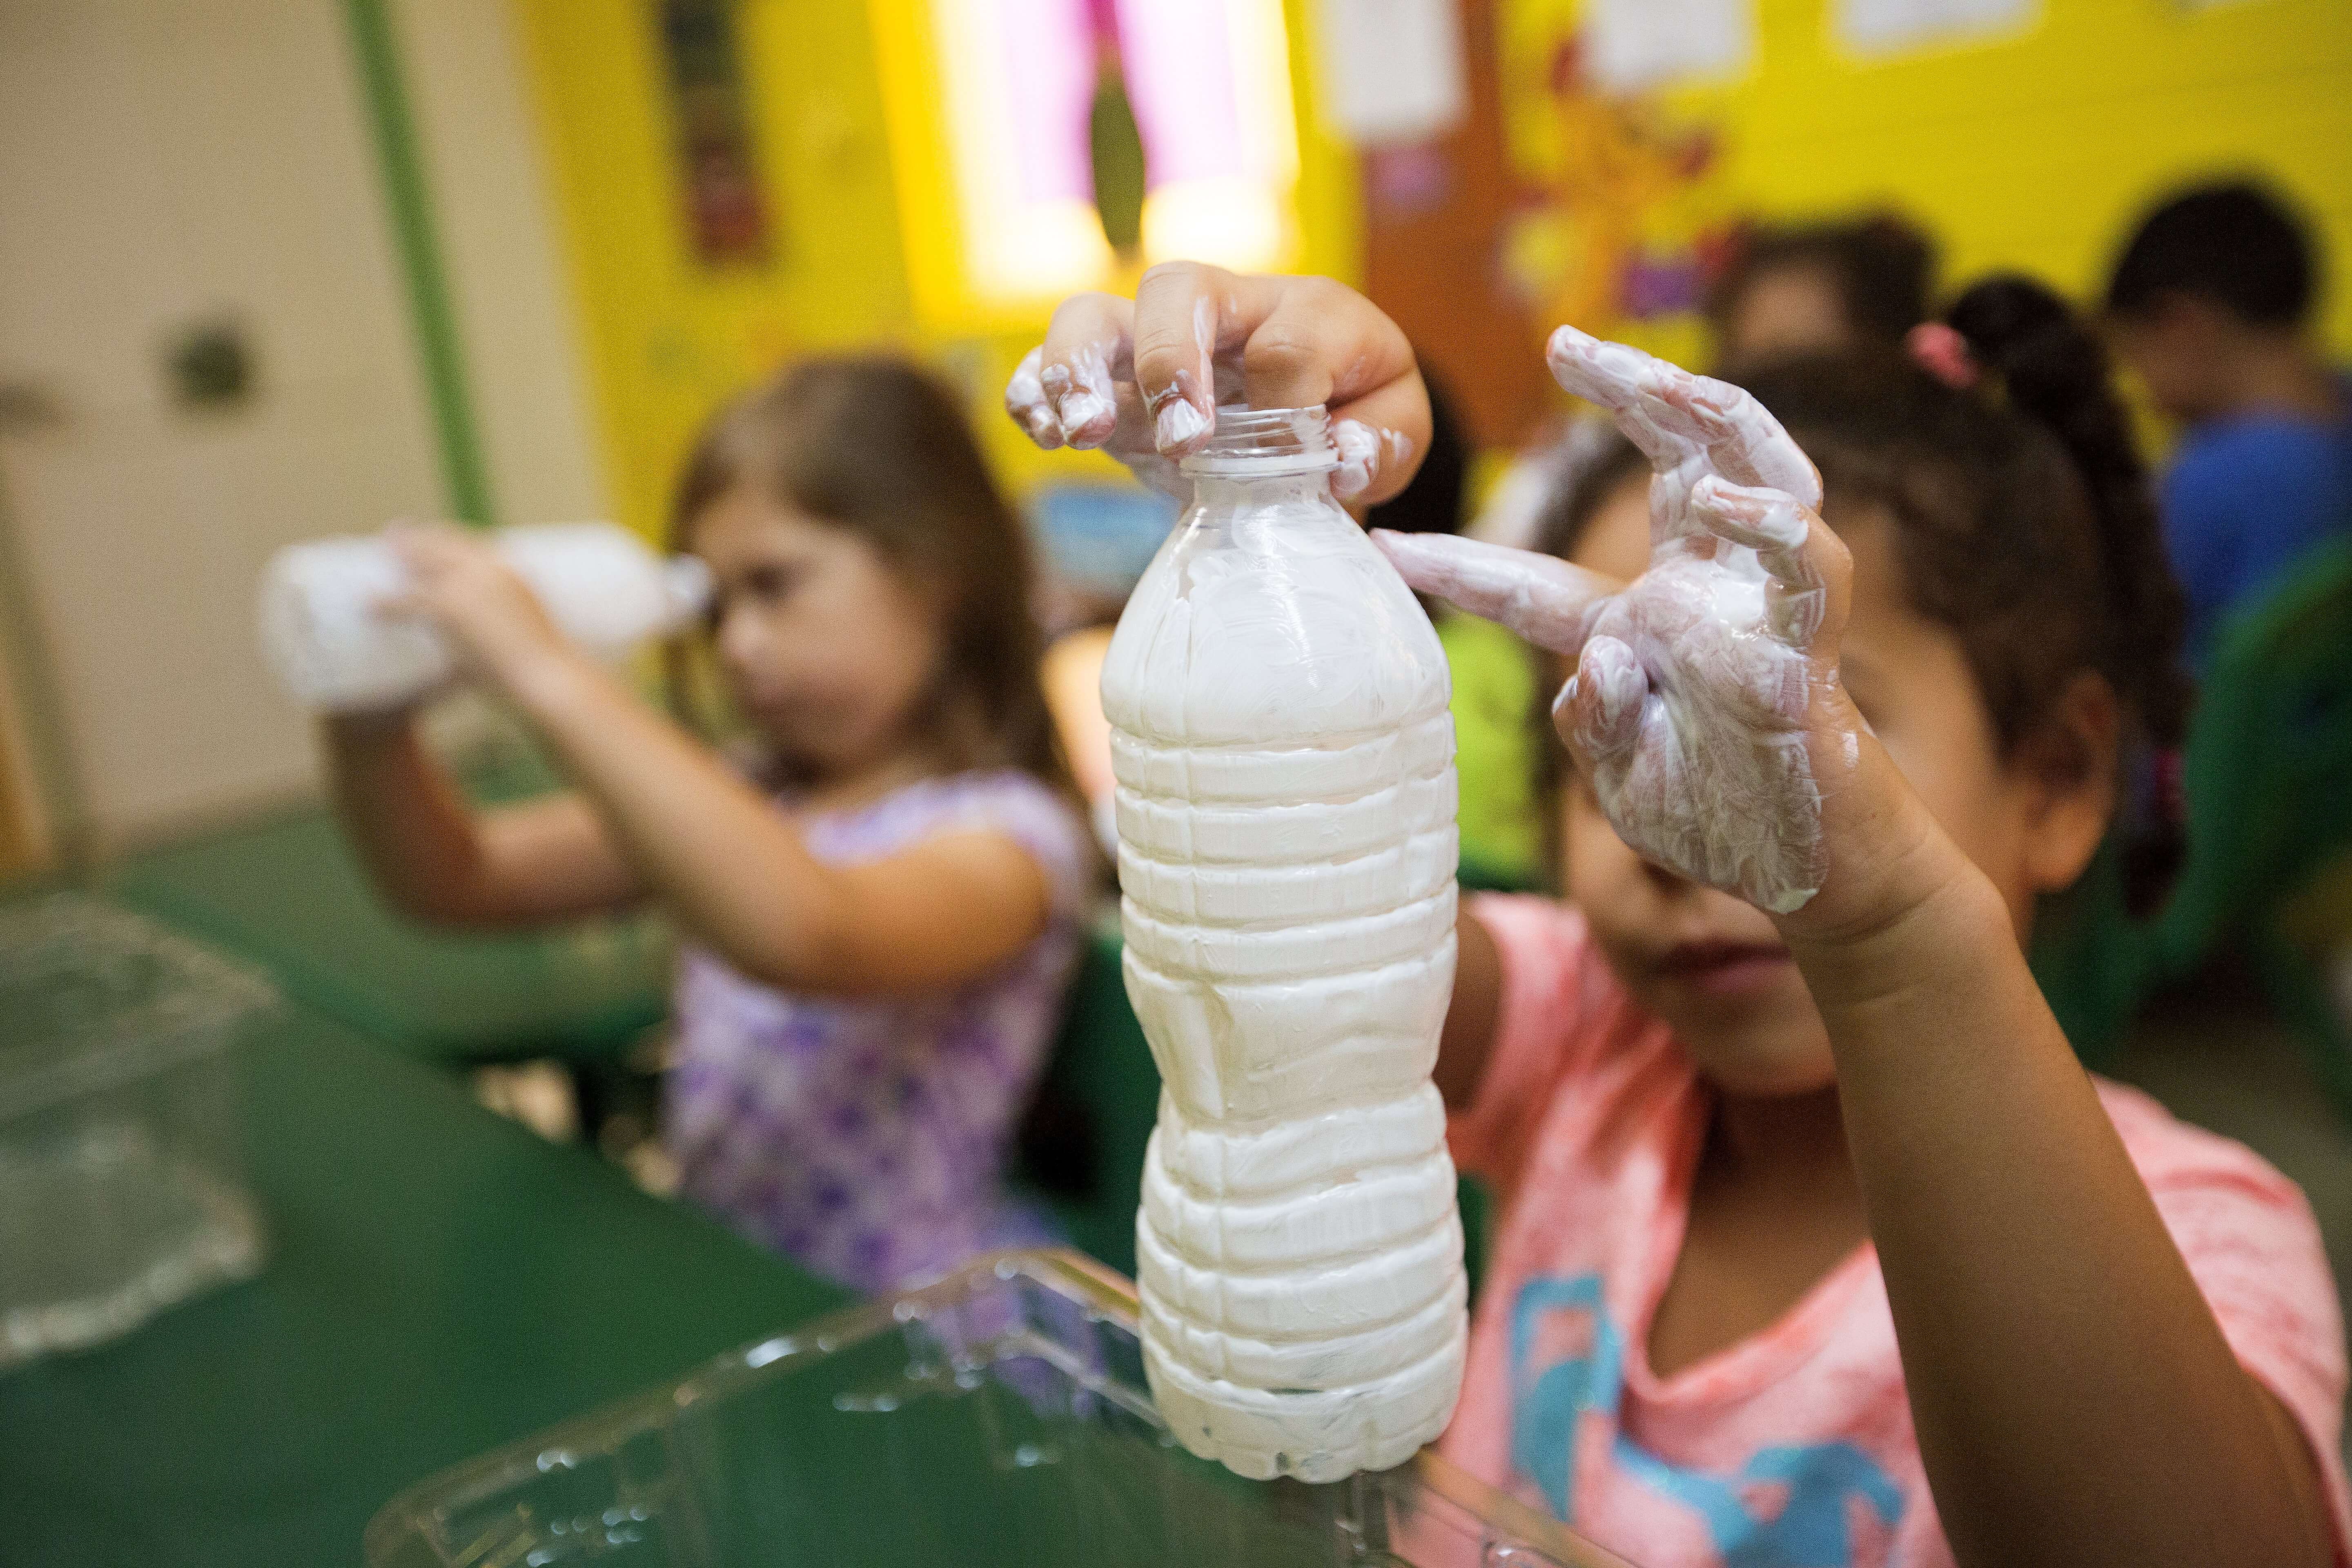 Children at MD Anderson Family YMCA cover empty water bottles with sun screen and submerge them in water to demonstrate the importance of reapplying sunscreen after swimming.